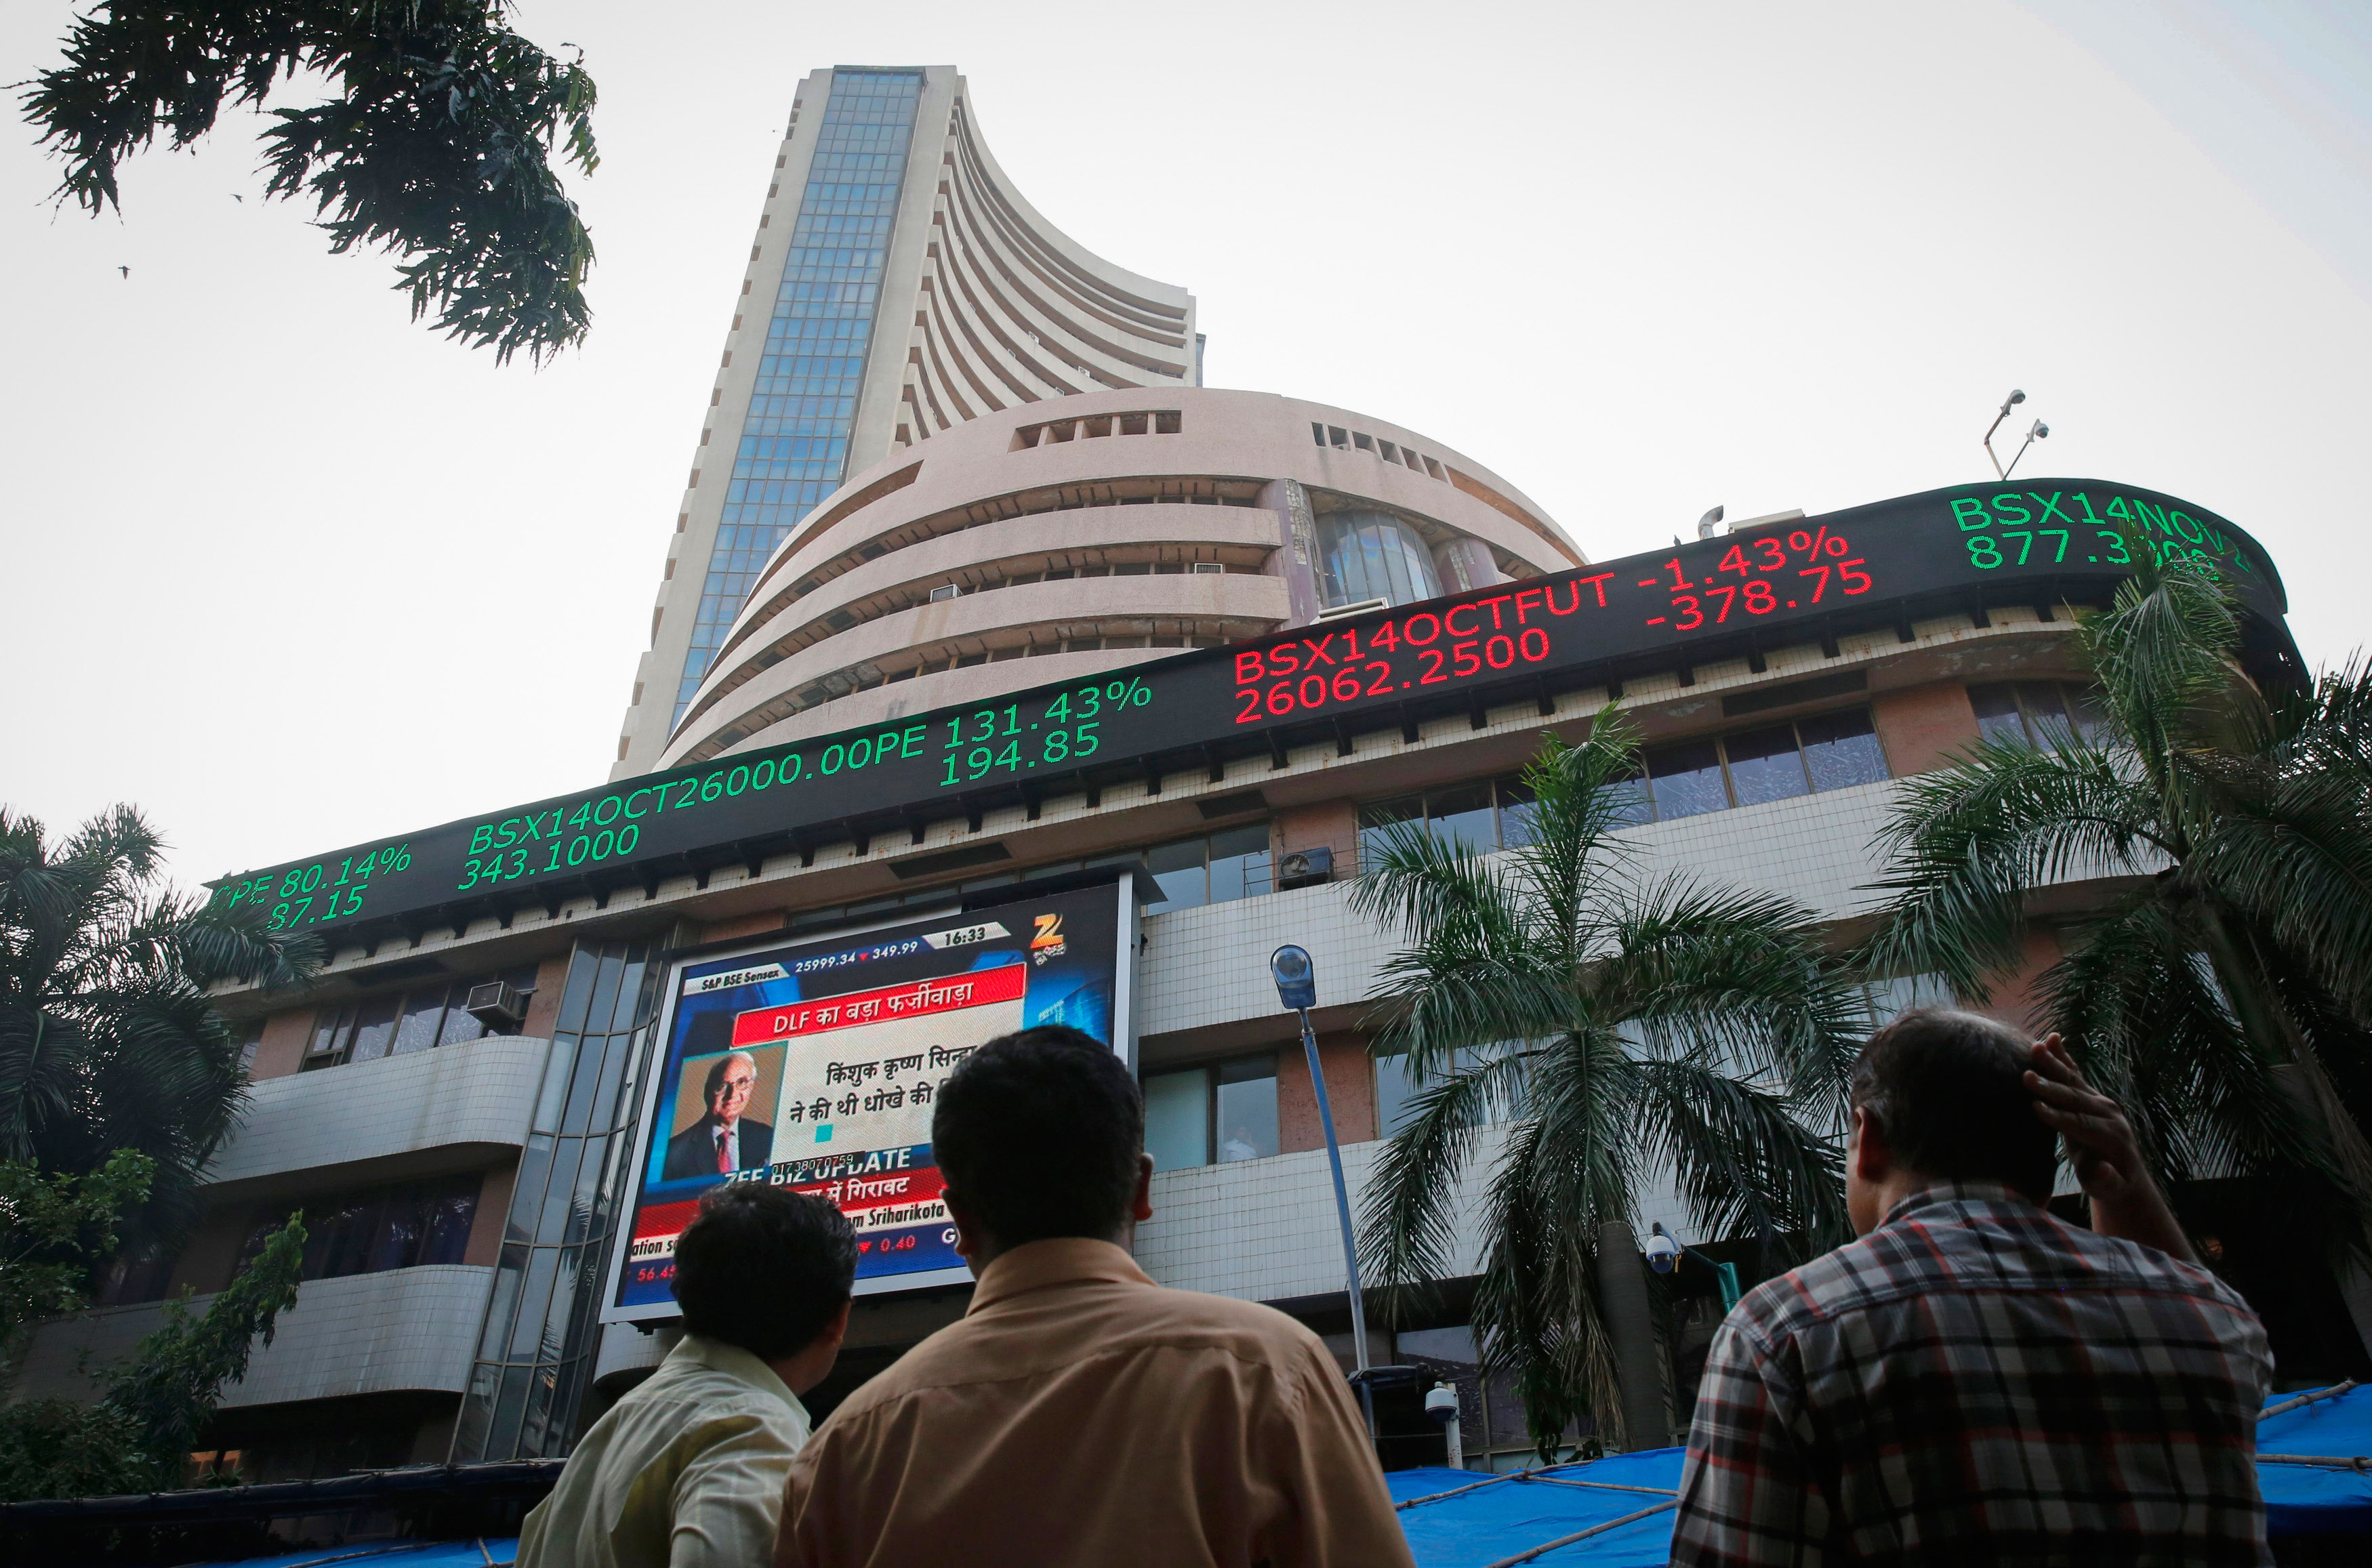 Sensex jumps on rate cut hopes